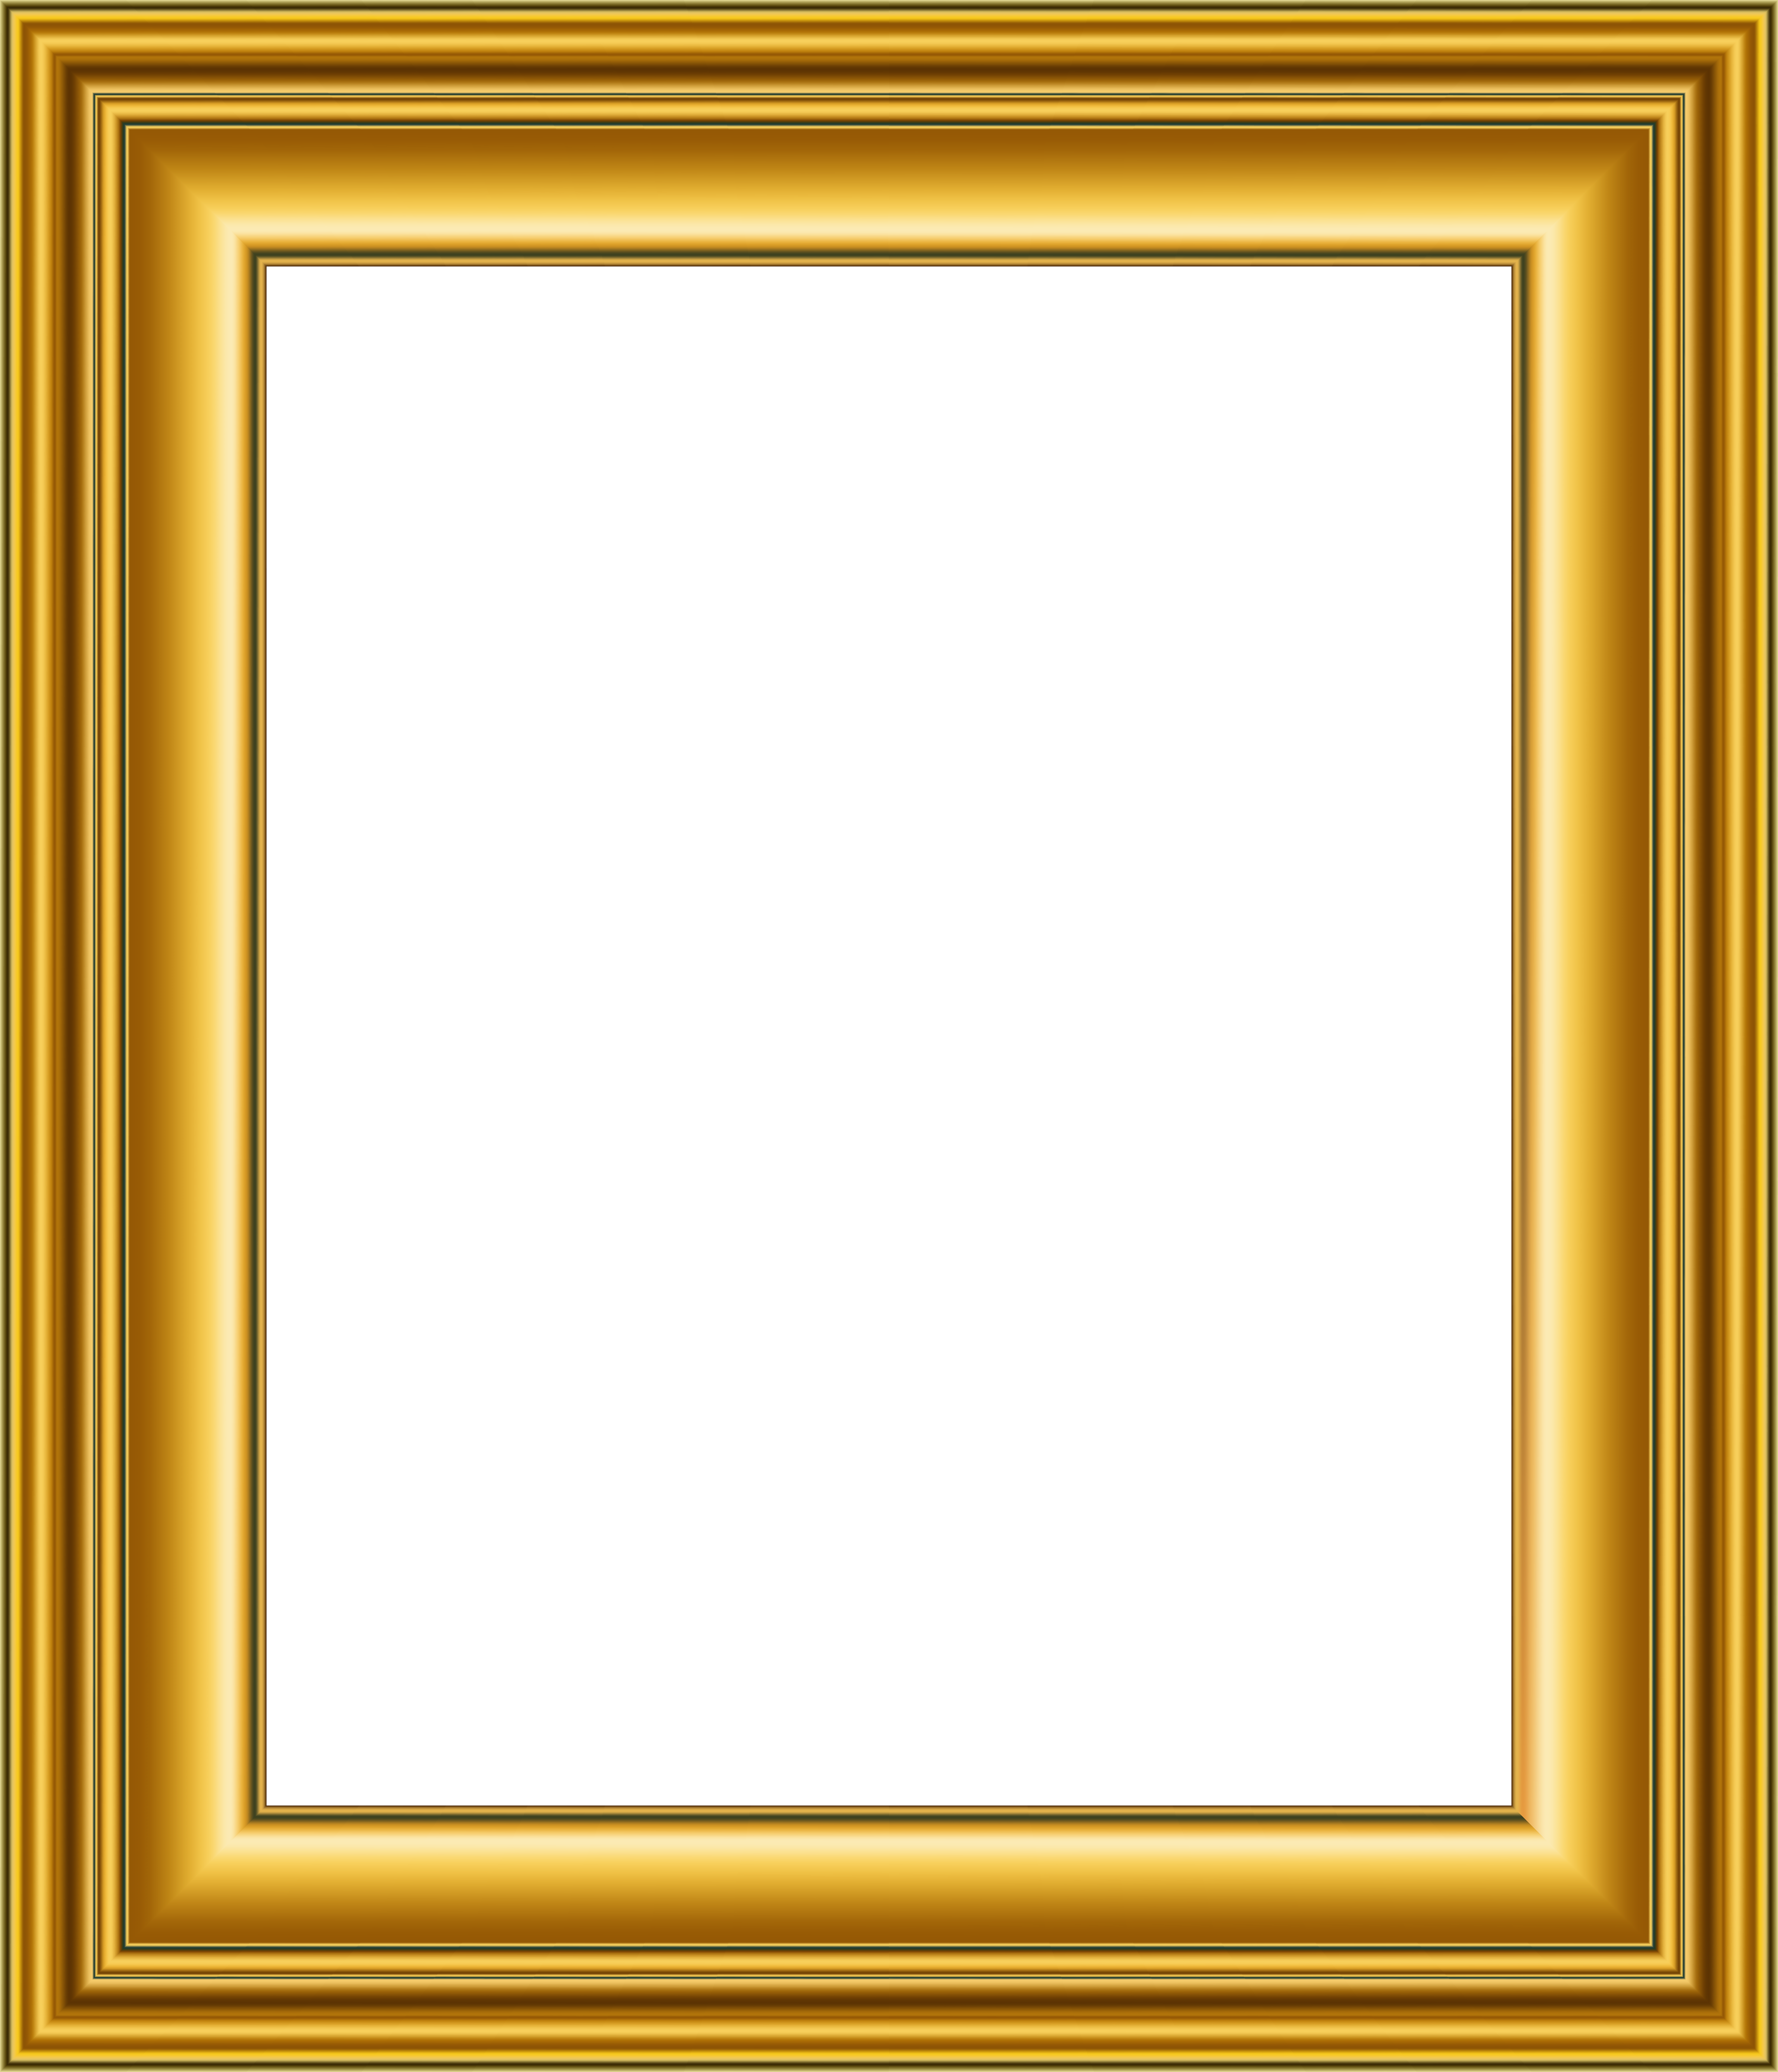 old gold frame transparent png image frames might use #25123